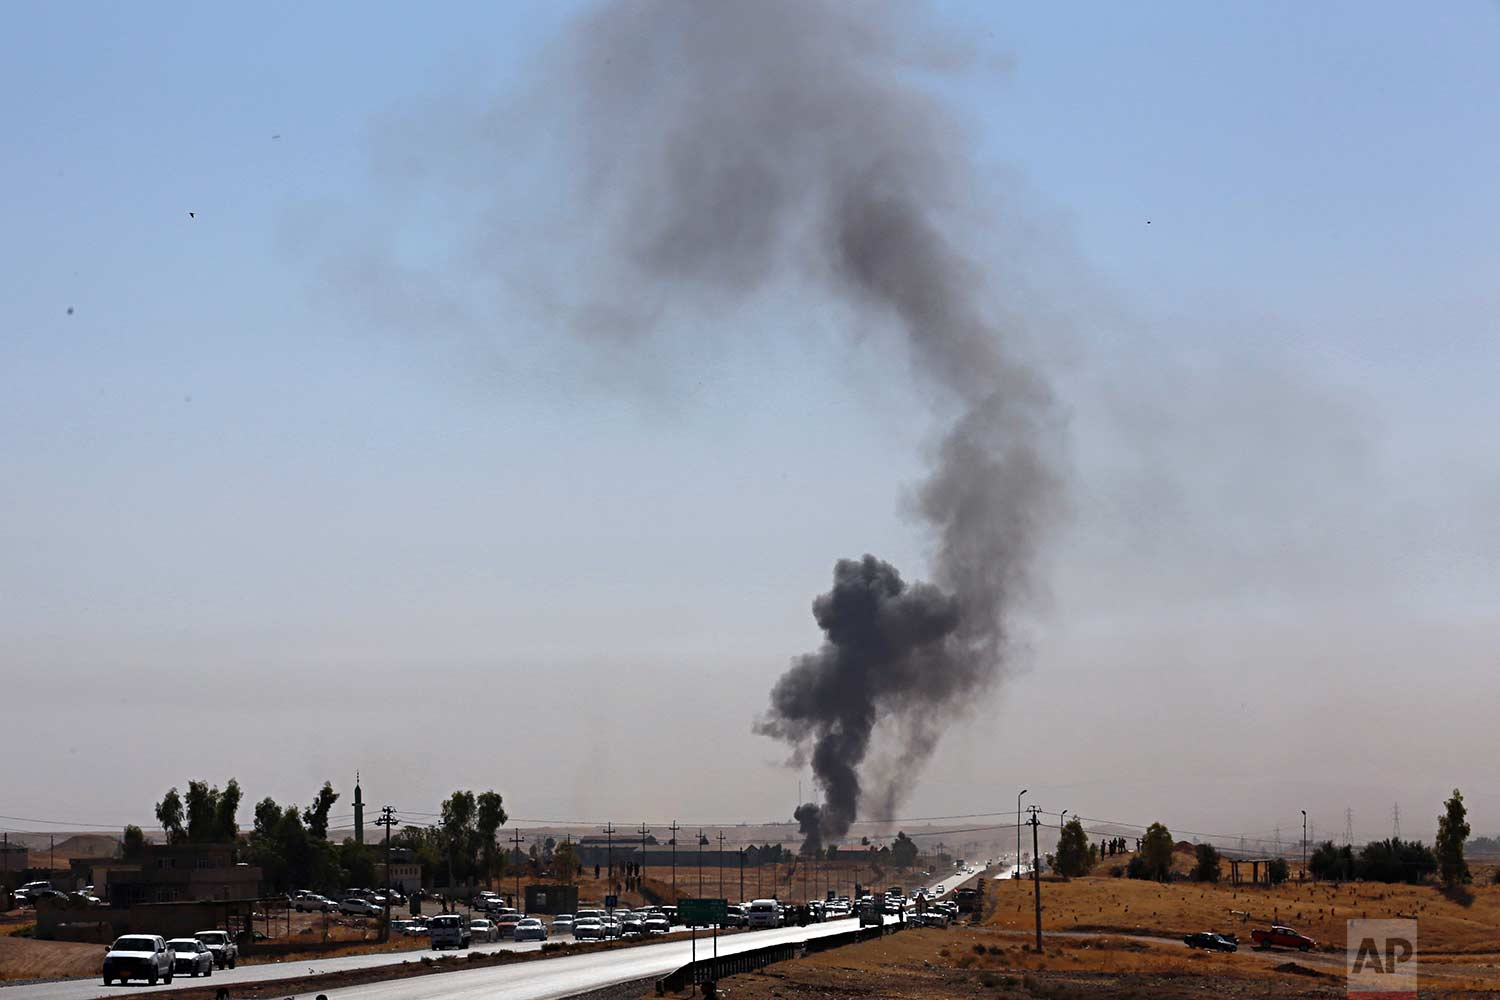 Smoke rises as Iraqi security forces launch explosives as Kurdish security forces withdraw from a checkpoint in Altun Kupri, on the outskirts of Irbil, Iraq, Friday Oct. 20, 2017. (AP Photo/Khalid Mohammed)